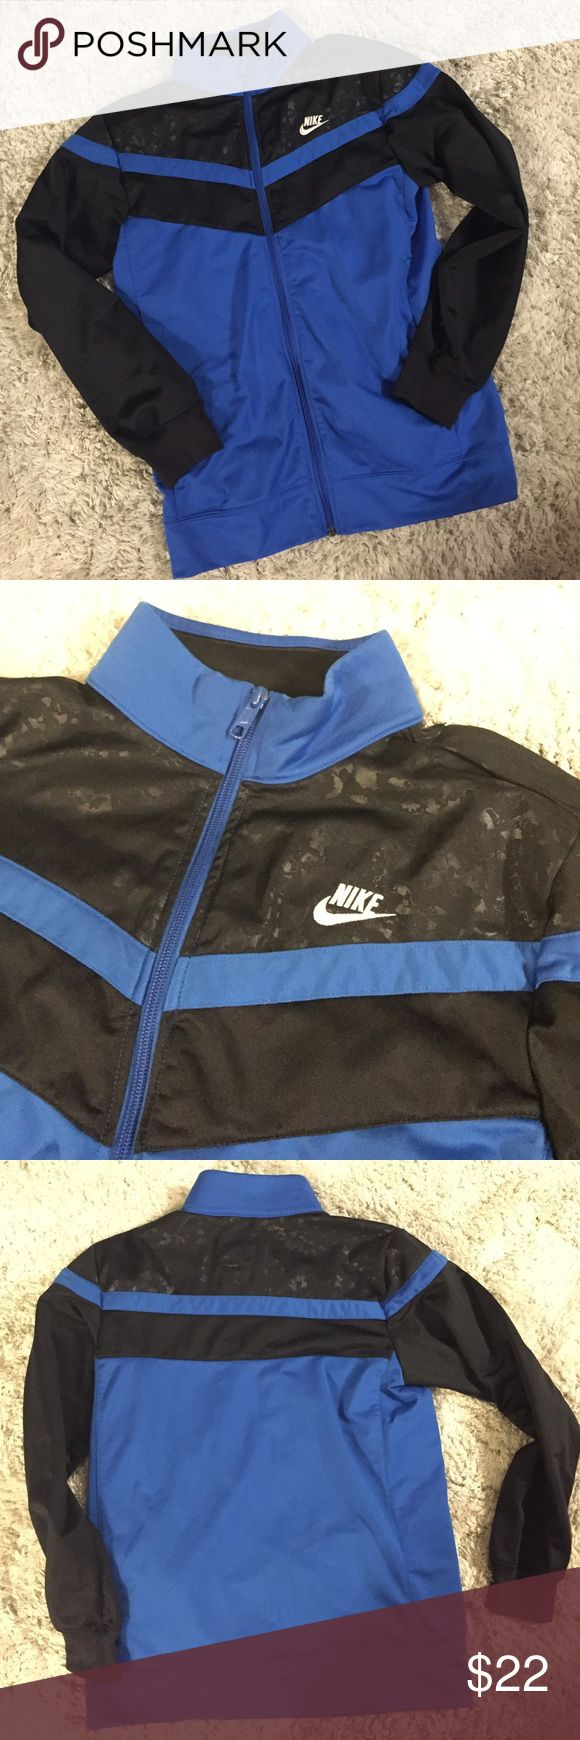 NIKE - track jacket Has two pockets. Still in good condition. Nike Other